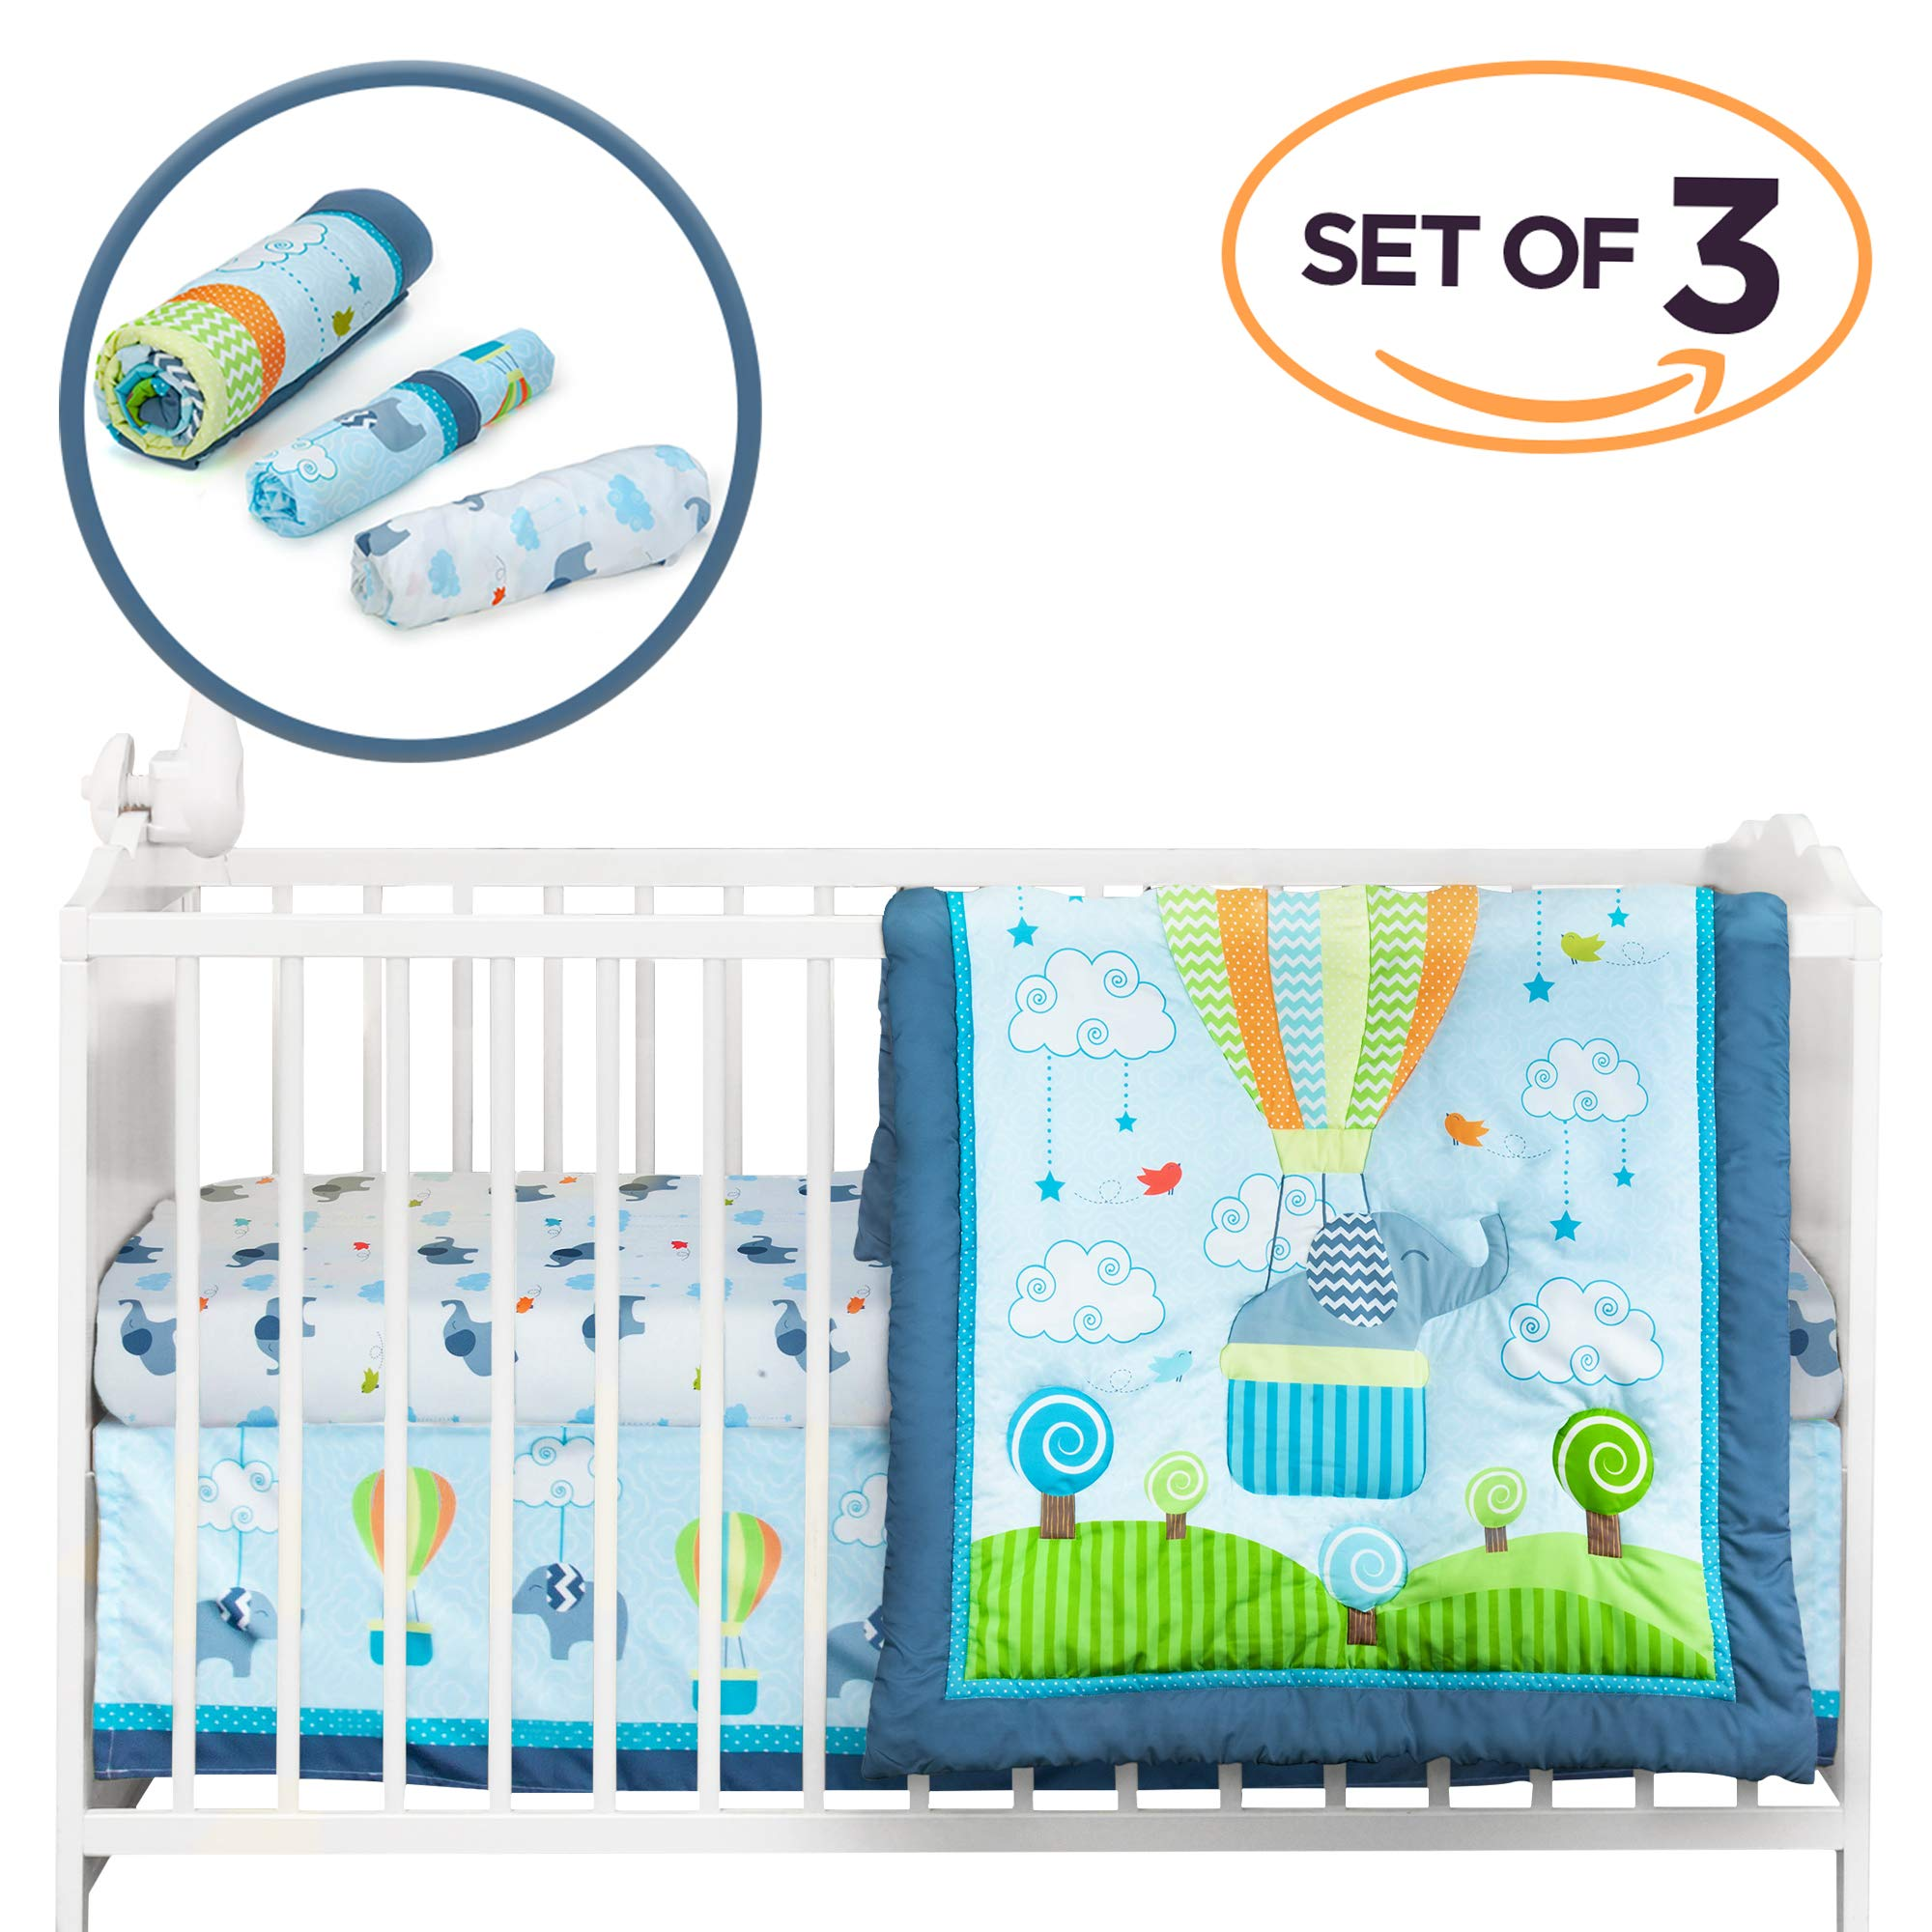 Cocoon Luxurious Elephant Baby Crib Bedding Sets for Boys - Let Your Little One Sleep Like an Angel - Organic Cotton Nursery Set Including Fitted Sheet, Comforter & Crib Skirt (Set of 3)